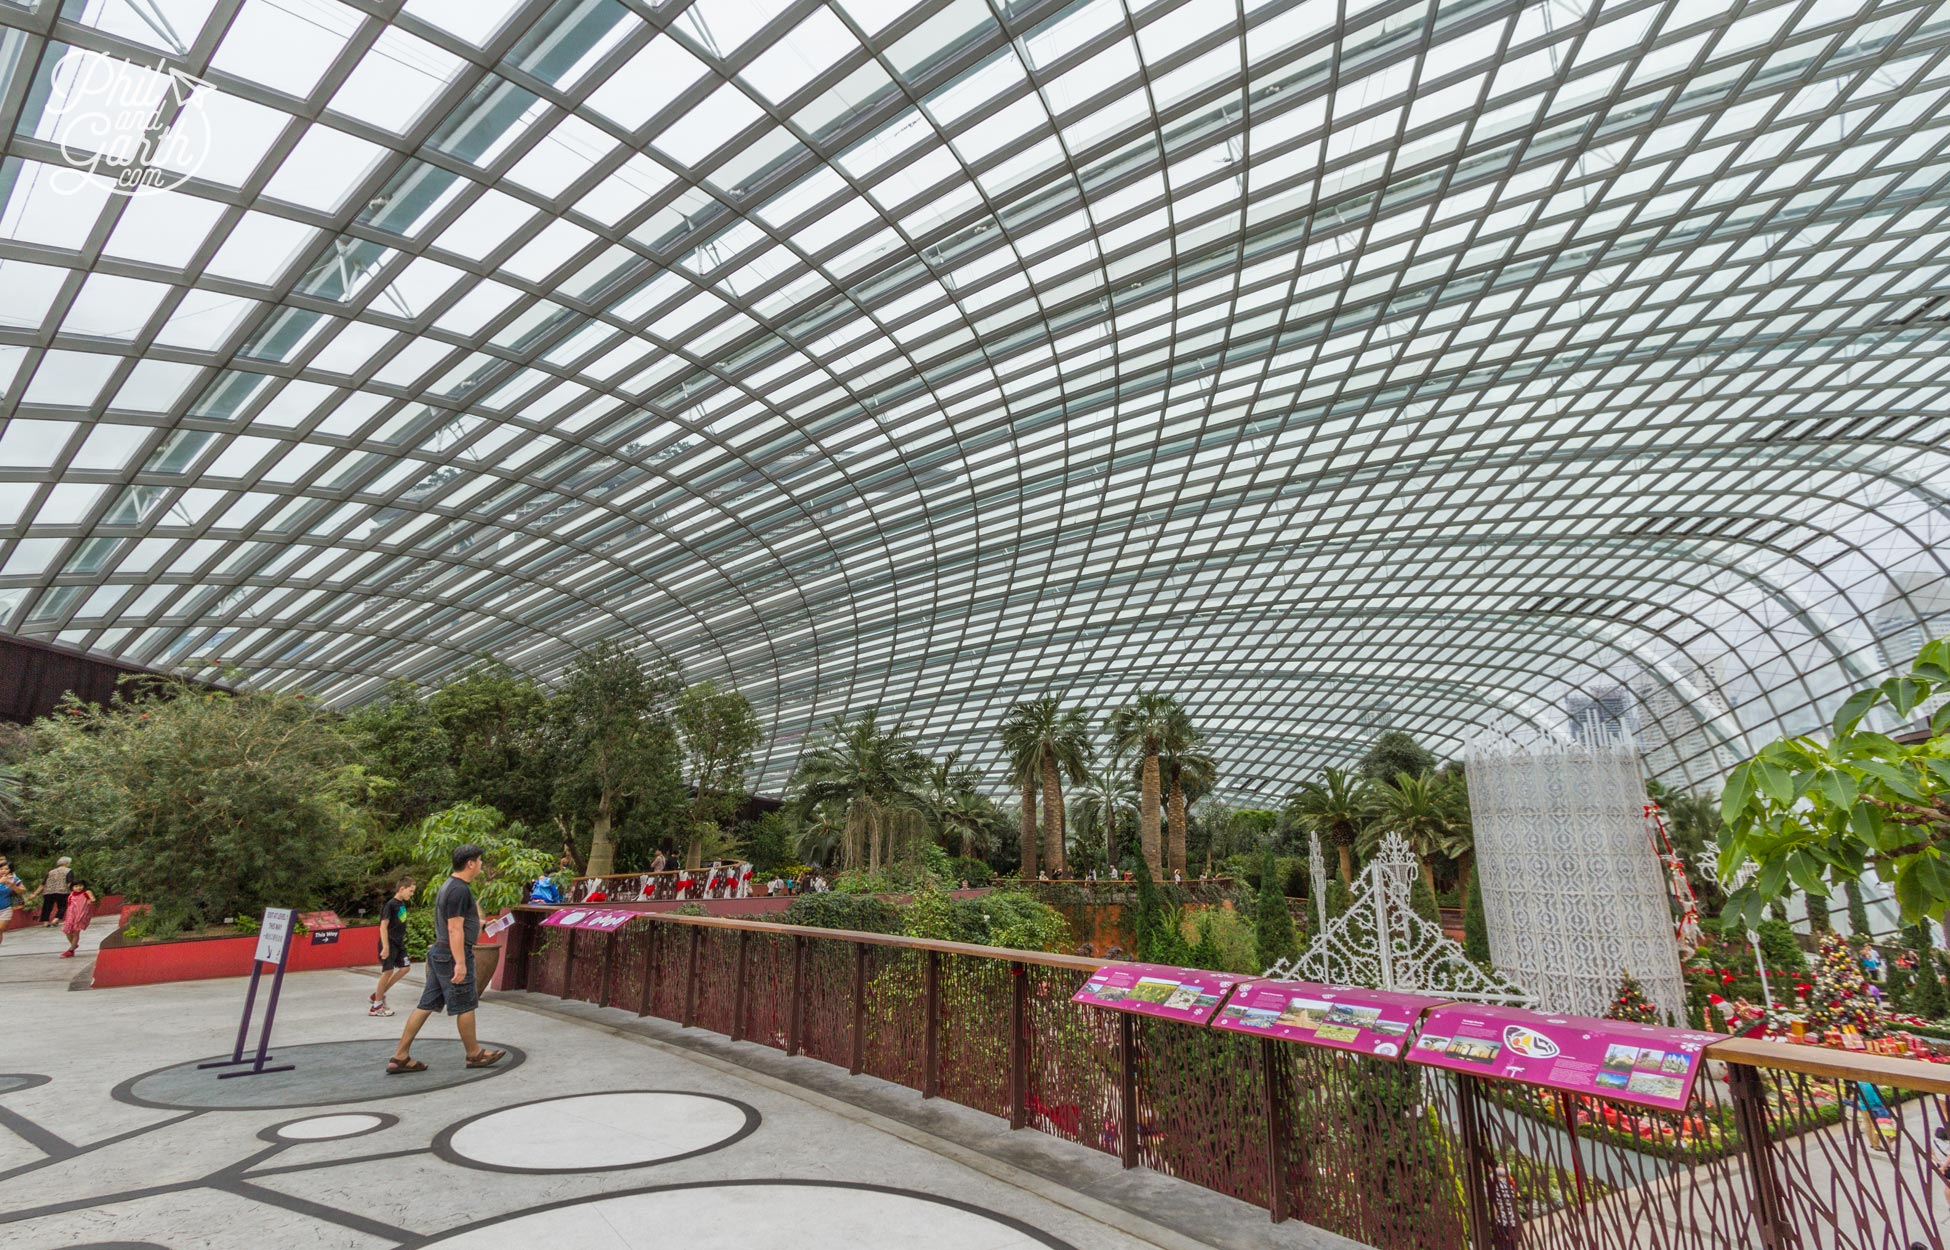 Inside the The Flower Dome - the structure was inspired by the shape of an orchid flower.